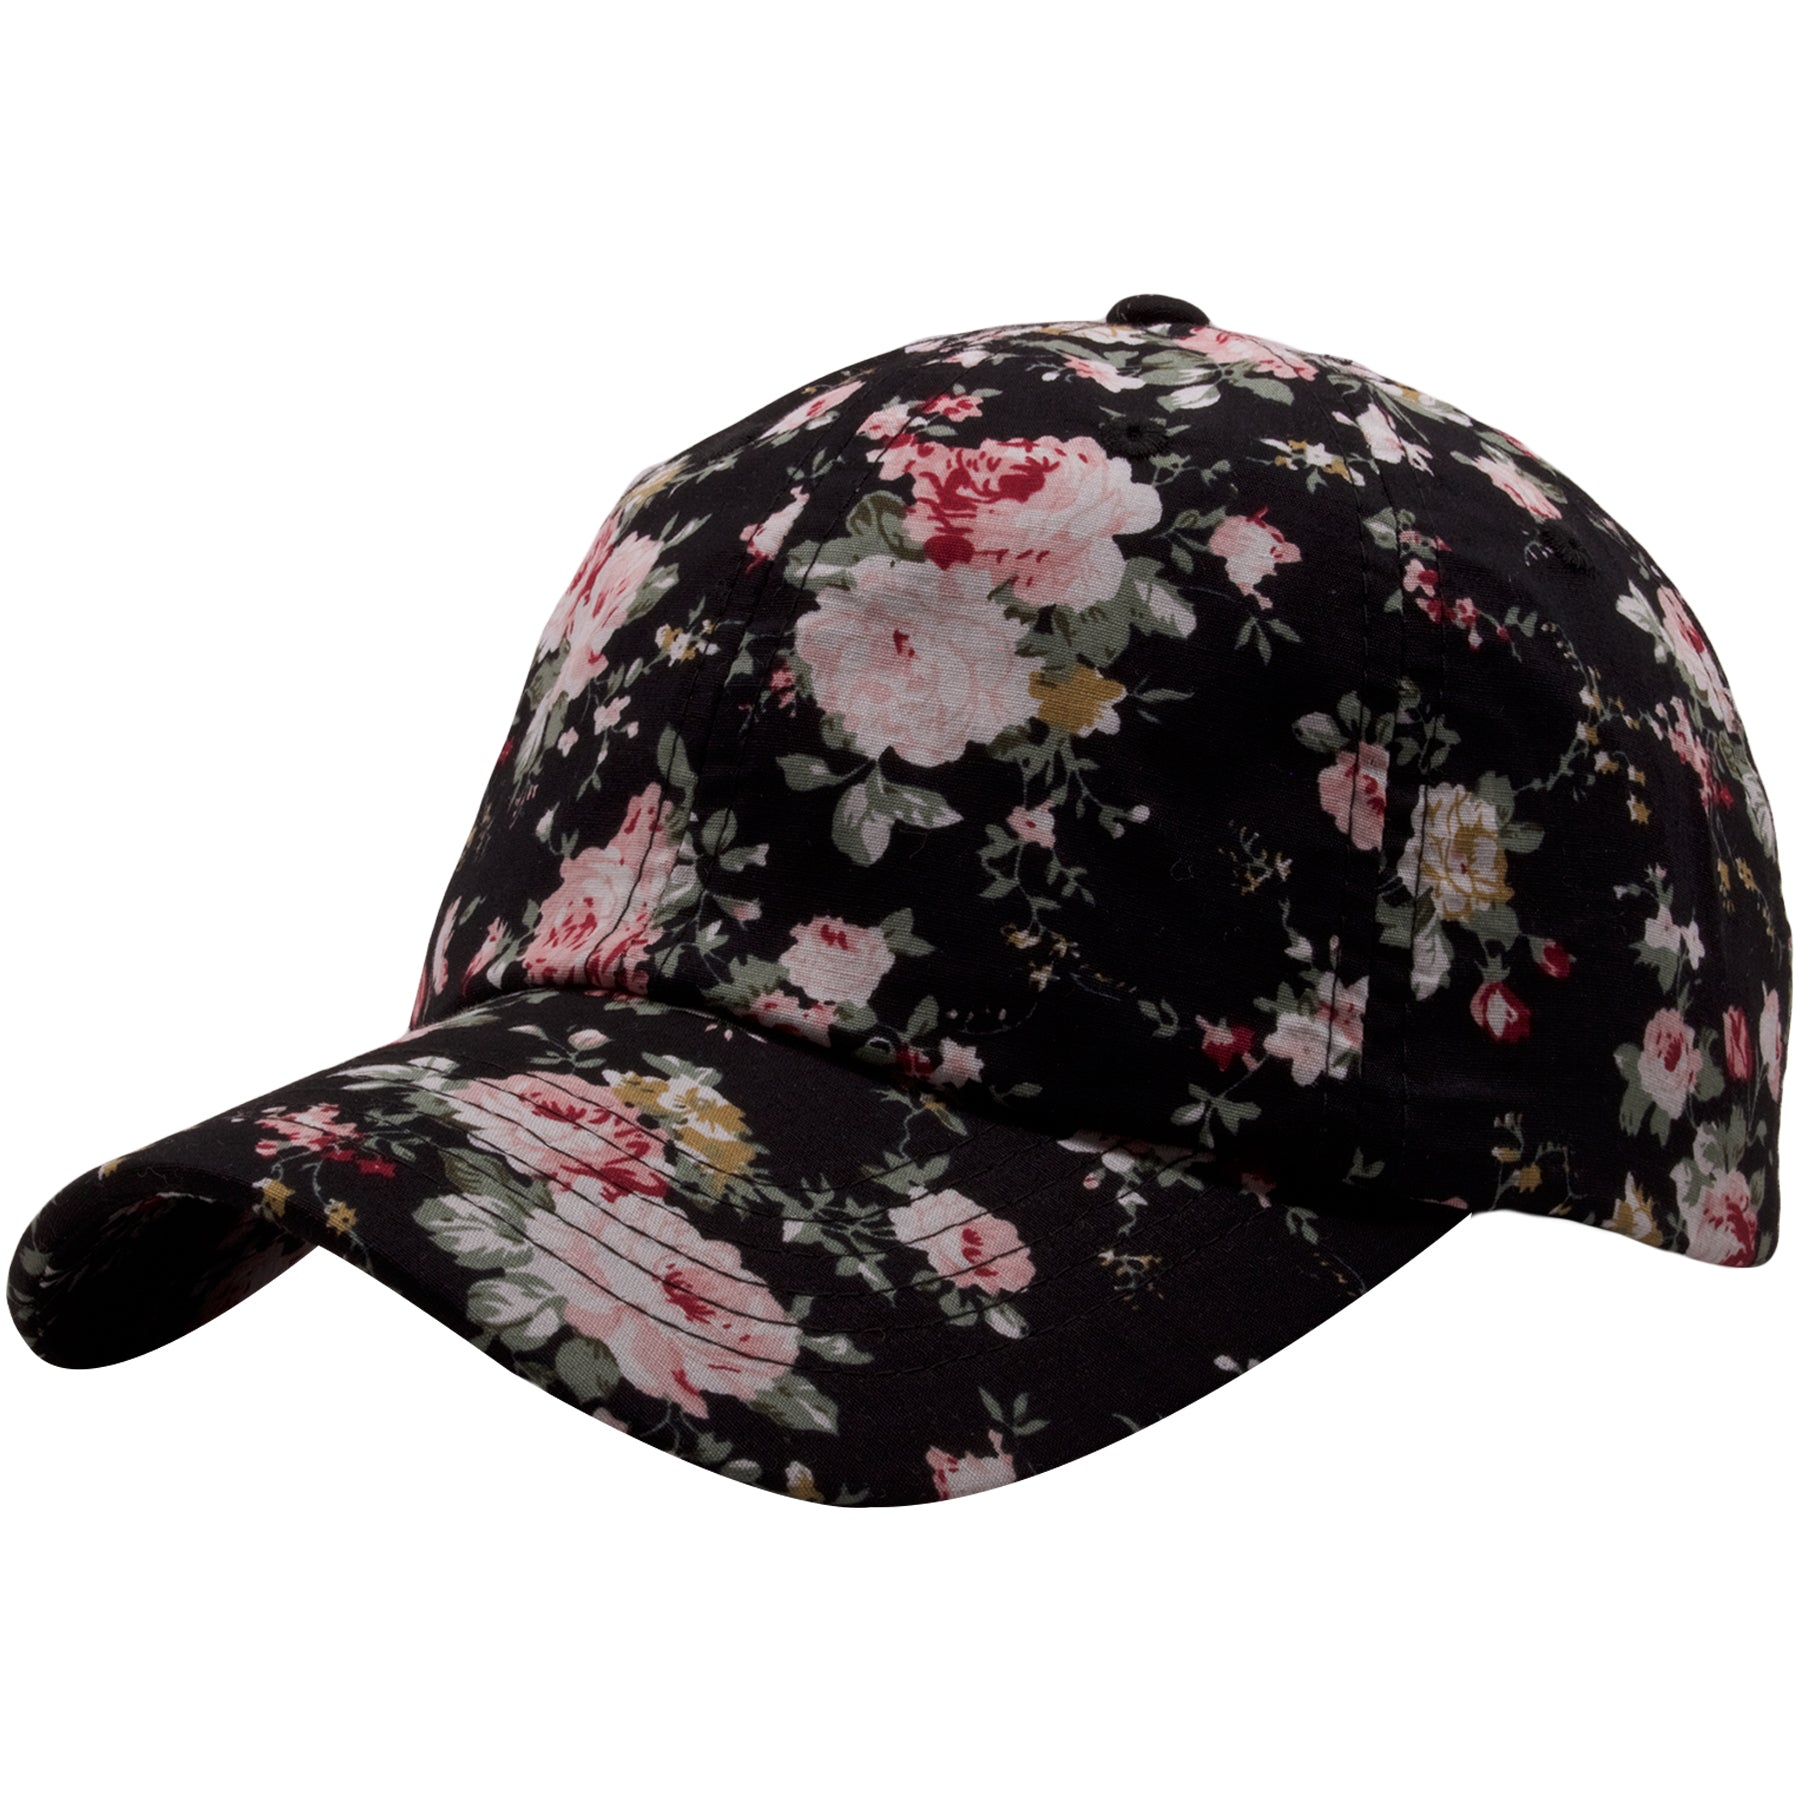 ... The Foot Clan Black Floral Blank Adjustable Dad Hat features a bent  brim and a soft ... 4da72d1ca12a